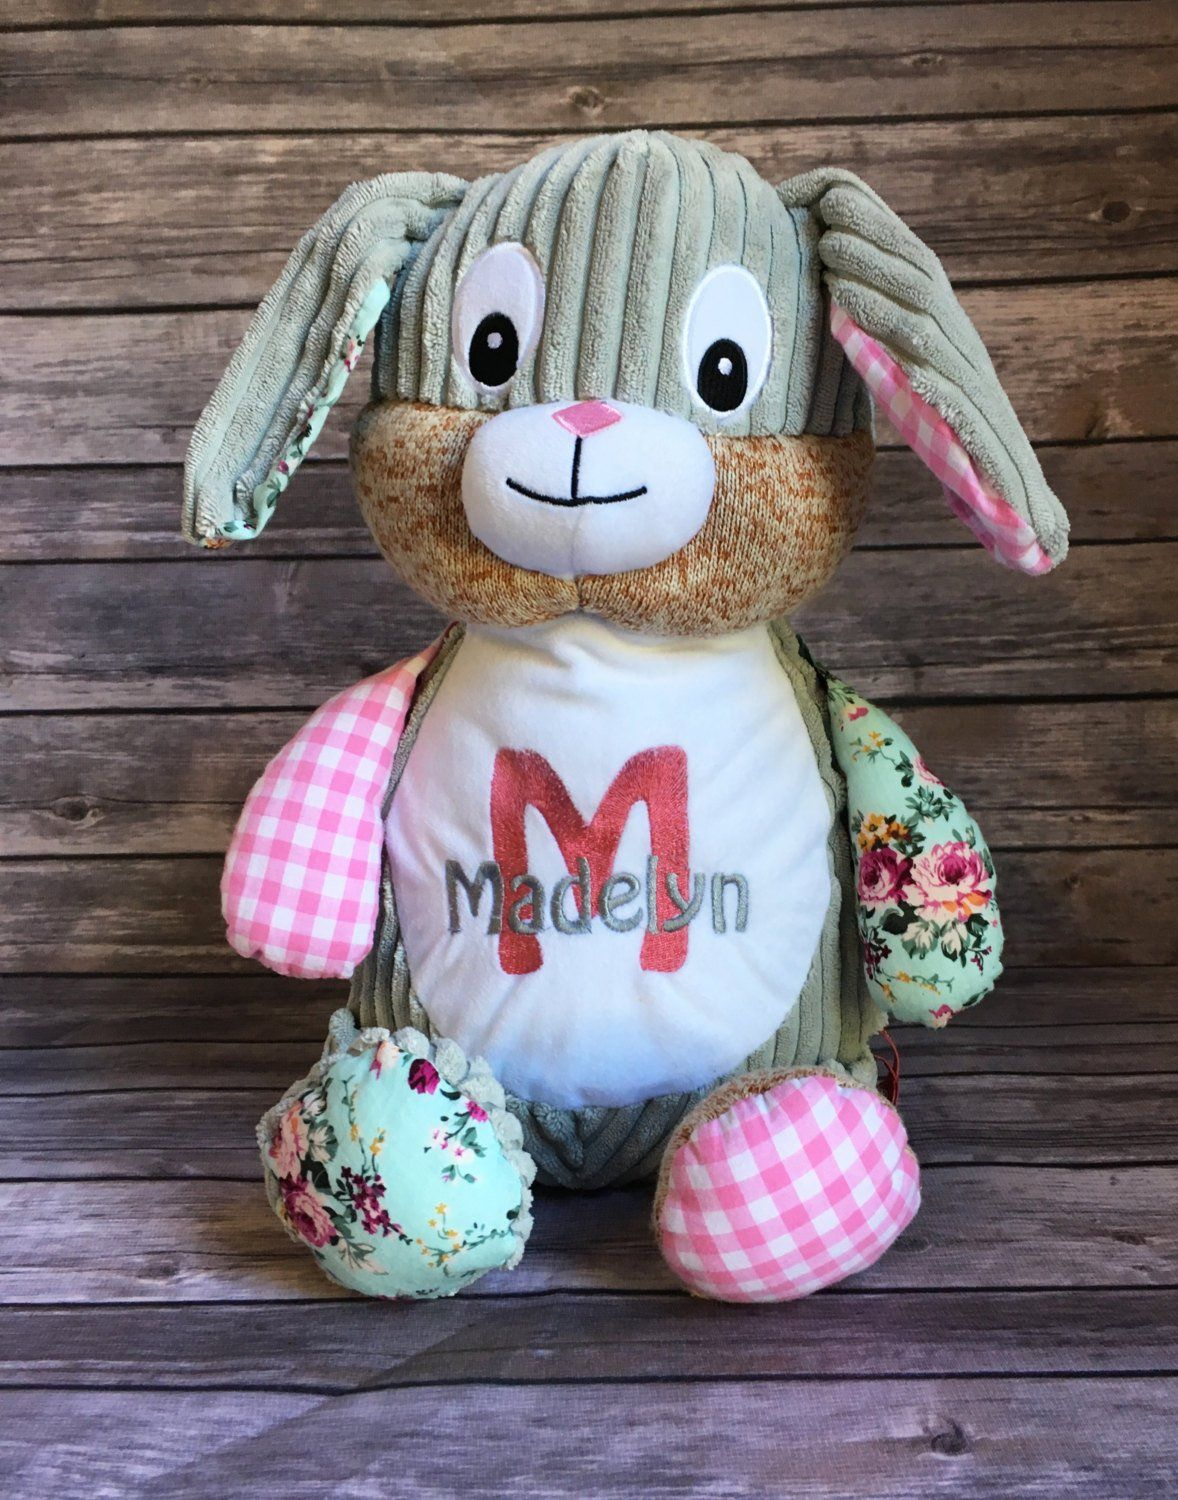 Personalized Cubbie Stuffed Animal Baby gifts